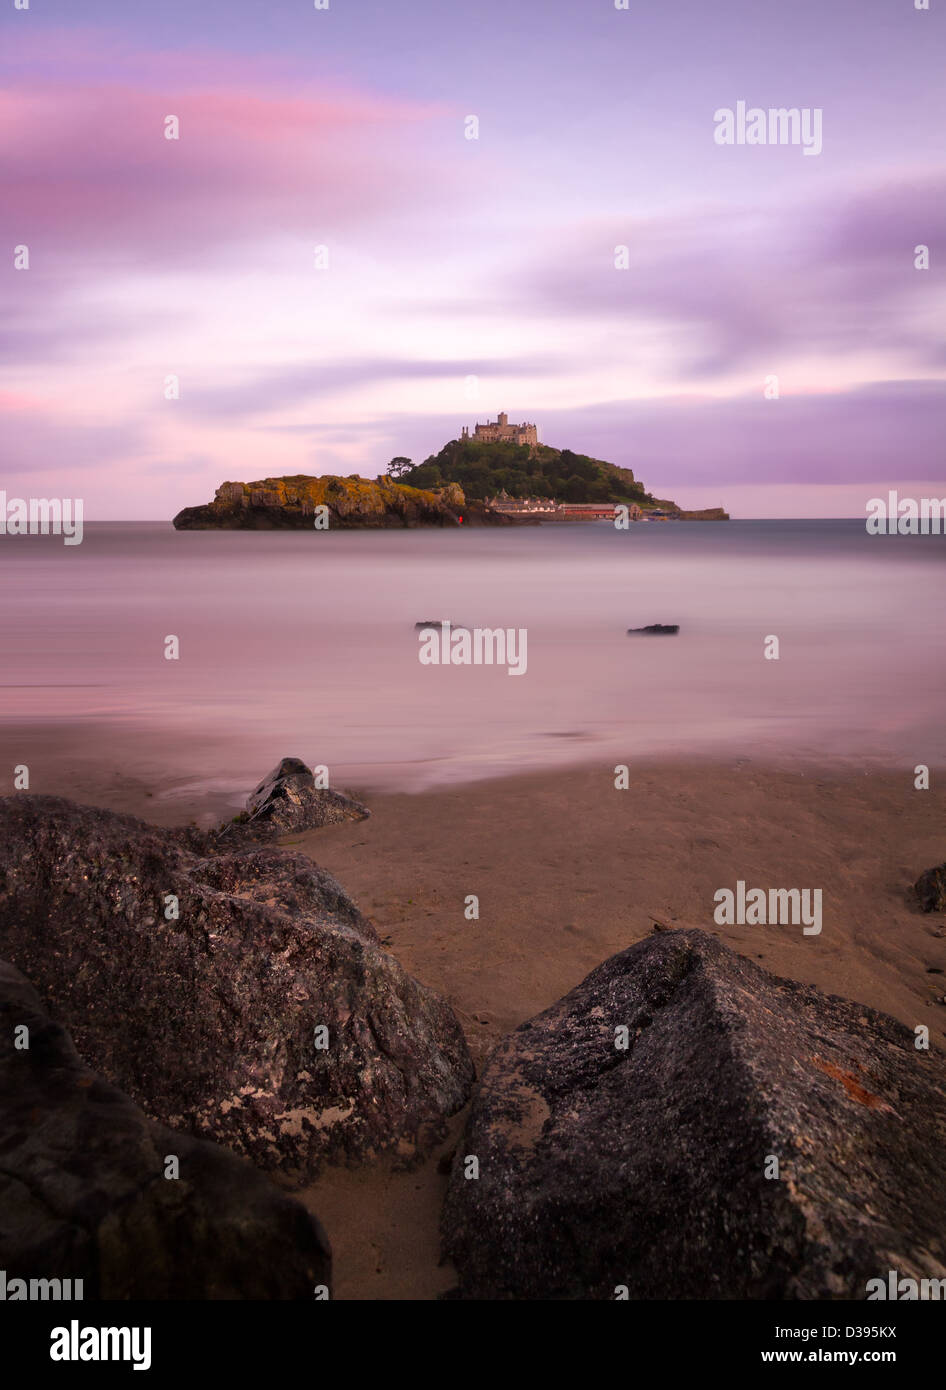 St. Michaels Mount with rocks at dusk, Cornwall, England - Stock Image